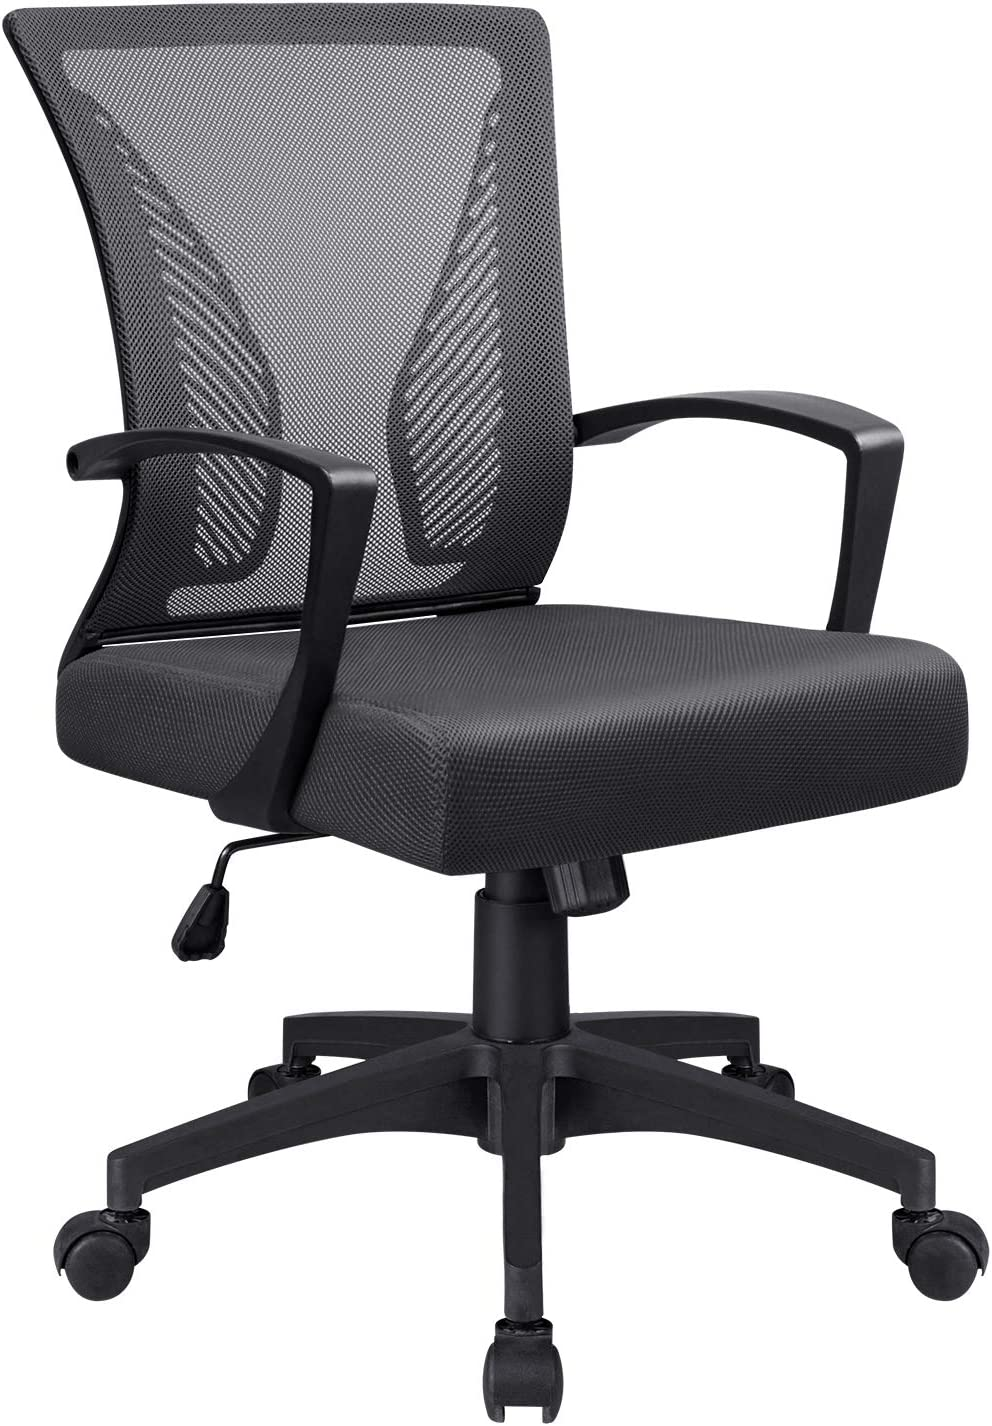 Office Chair Mid Back Mesh Desk Chair Ergonomic Lumbar Support Computer Chair Swivel Rolling Task Chair with Armrest (Black)